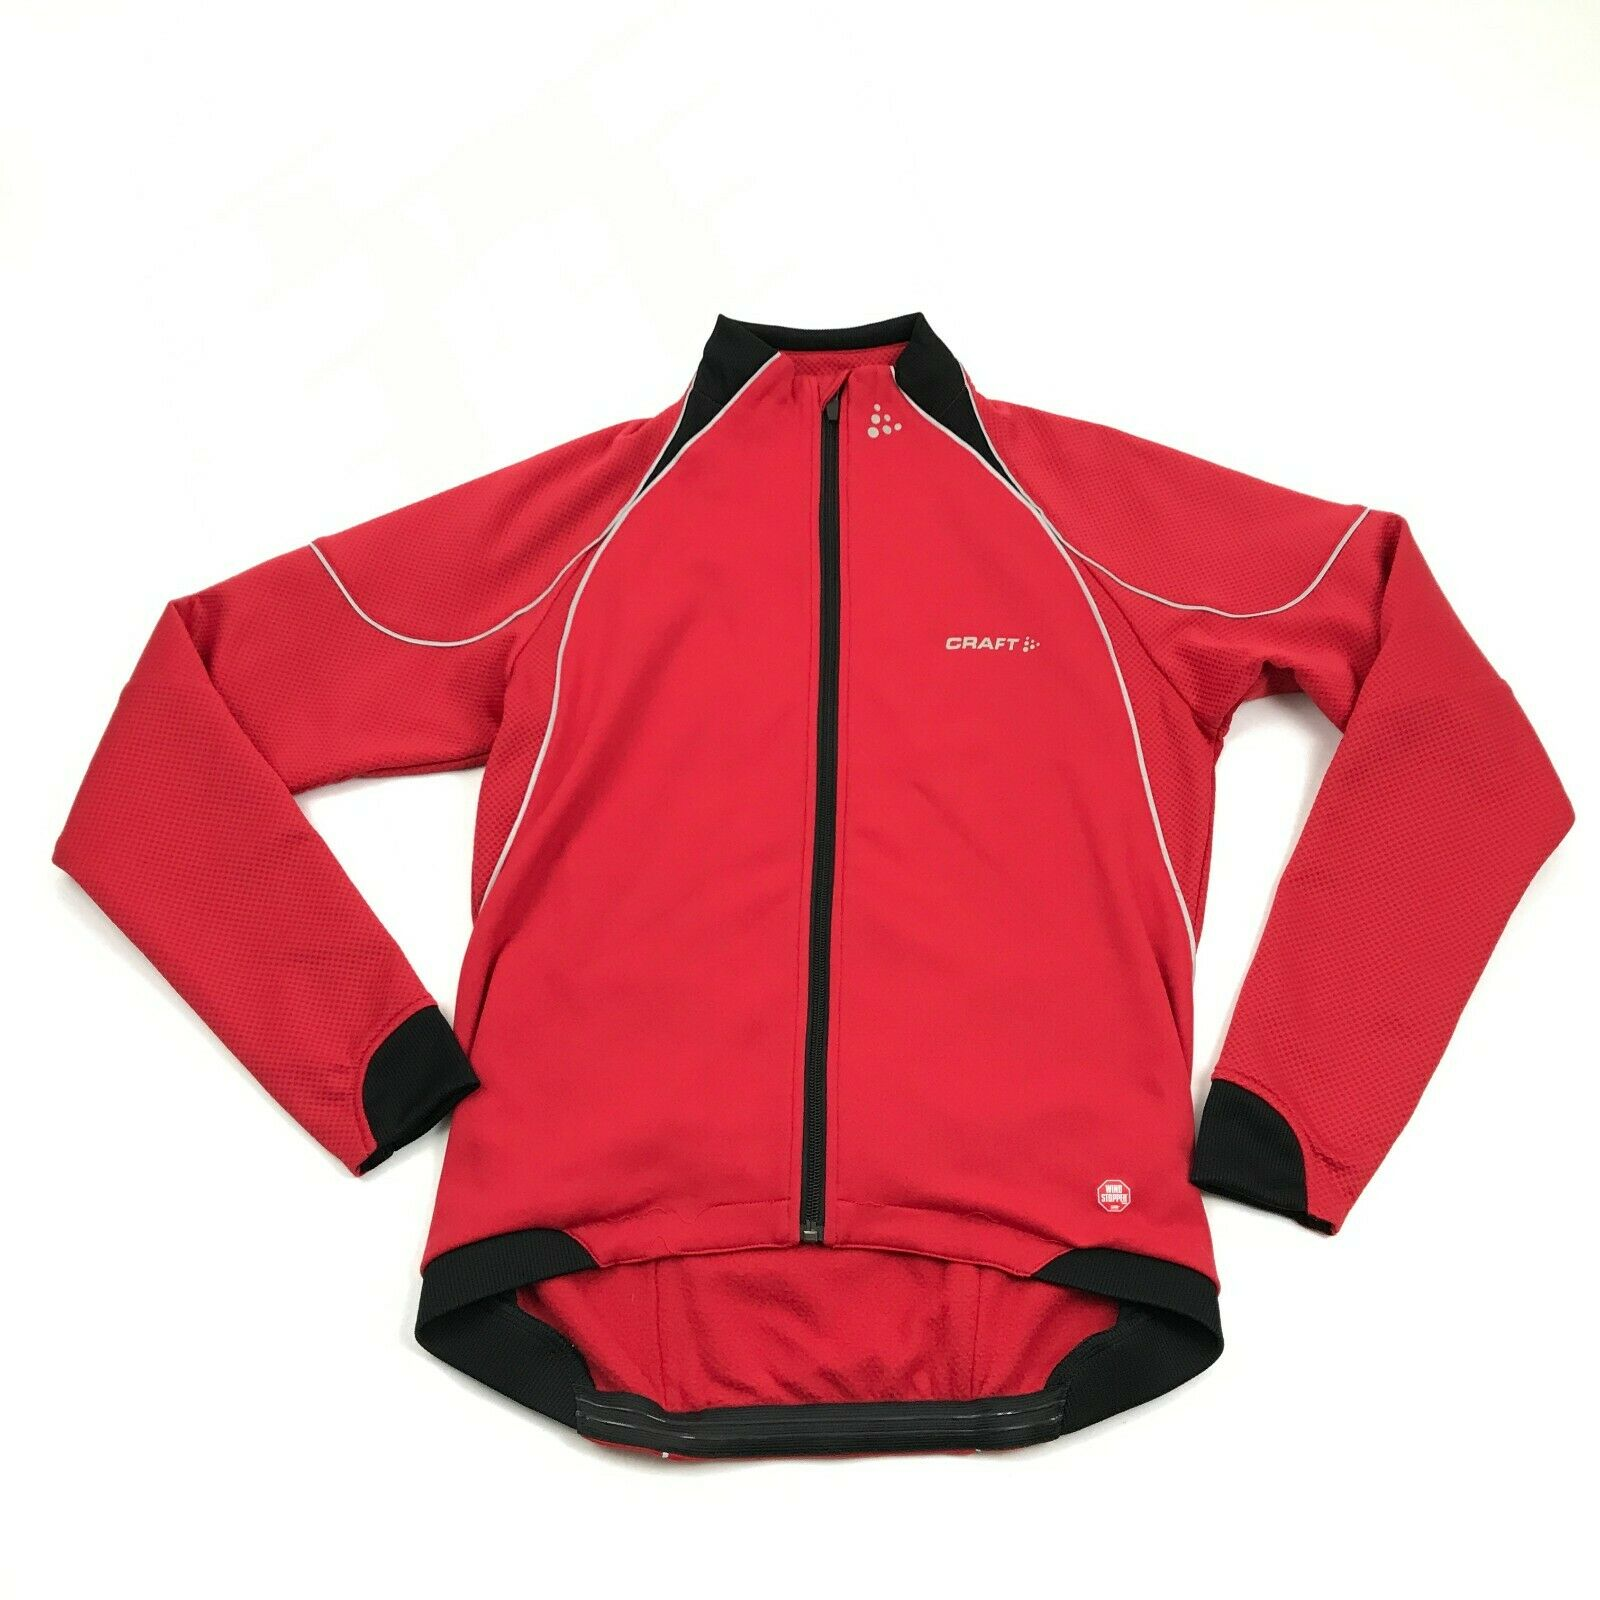 nuovo CRAFT L3 Prossoection uomini Cycle Jacket 3M Safety Reflective Warm Full Zip  149